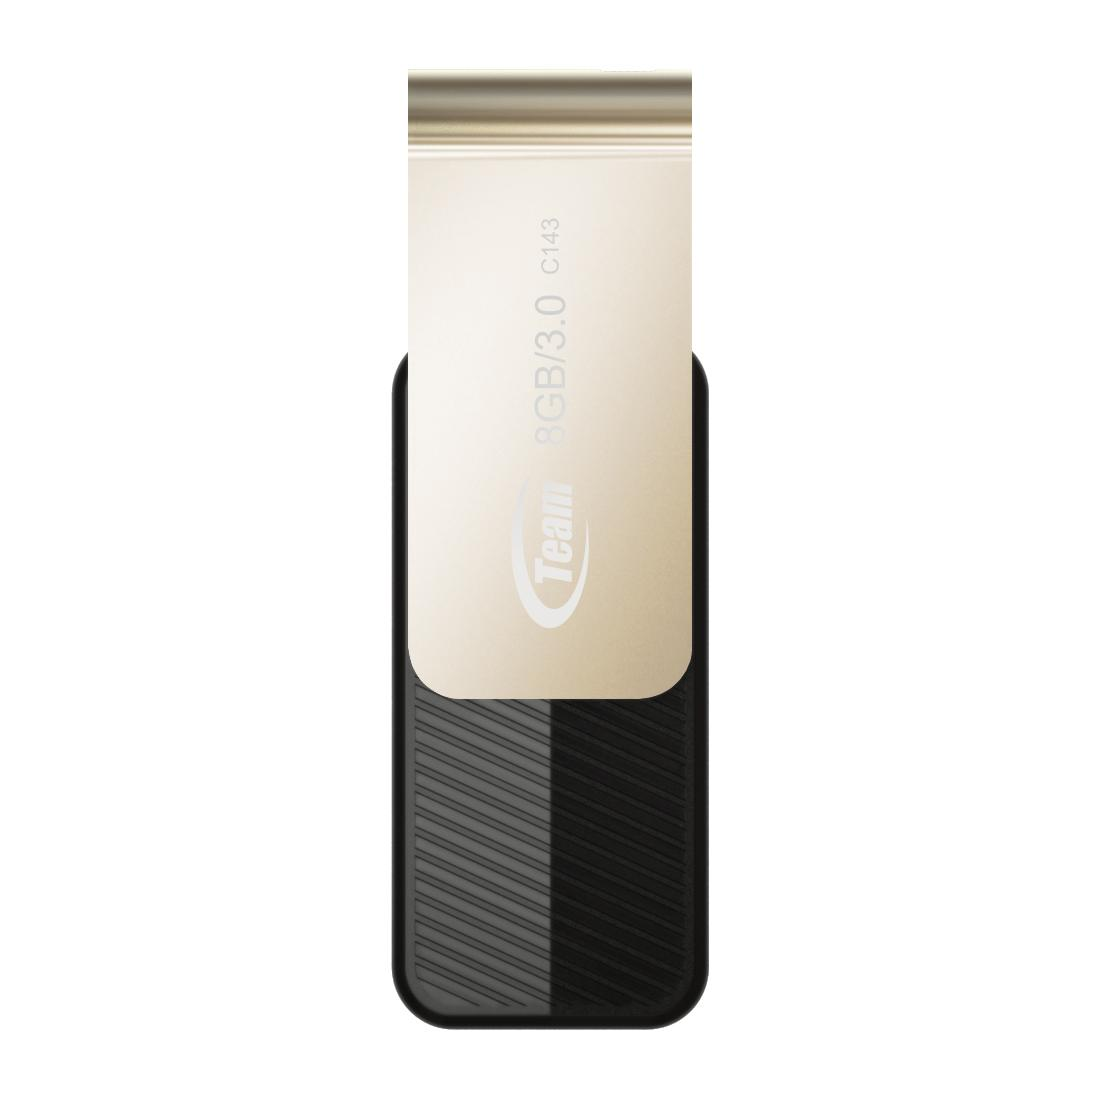 USB памет Team Group C143 8GB USB 3.0, Черен